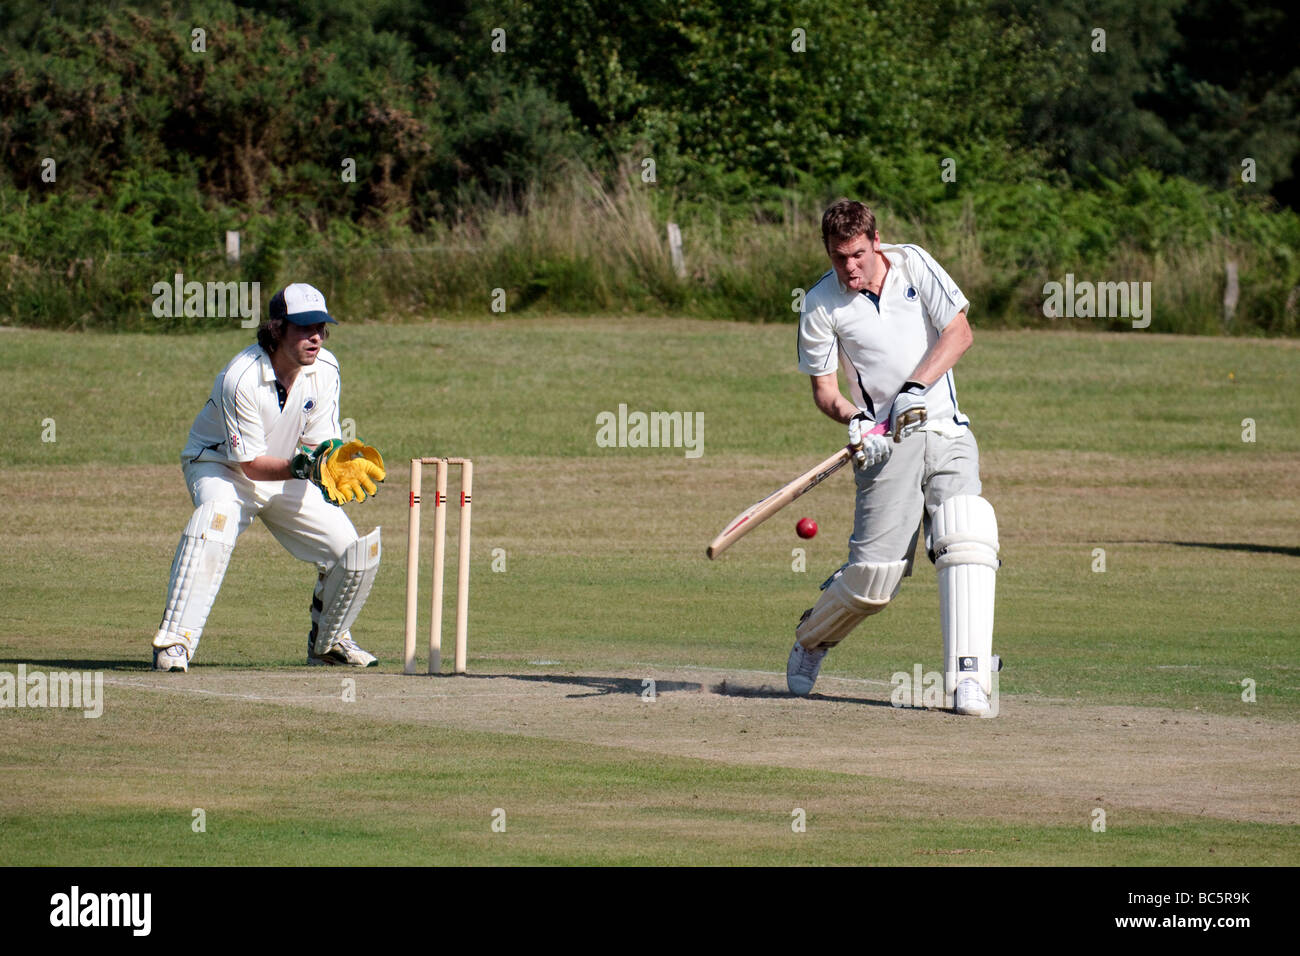 Village cricket being played at Coleman's Hatch - Stock Image